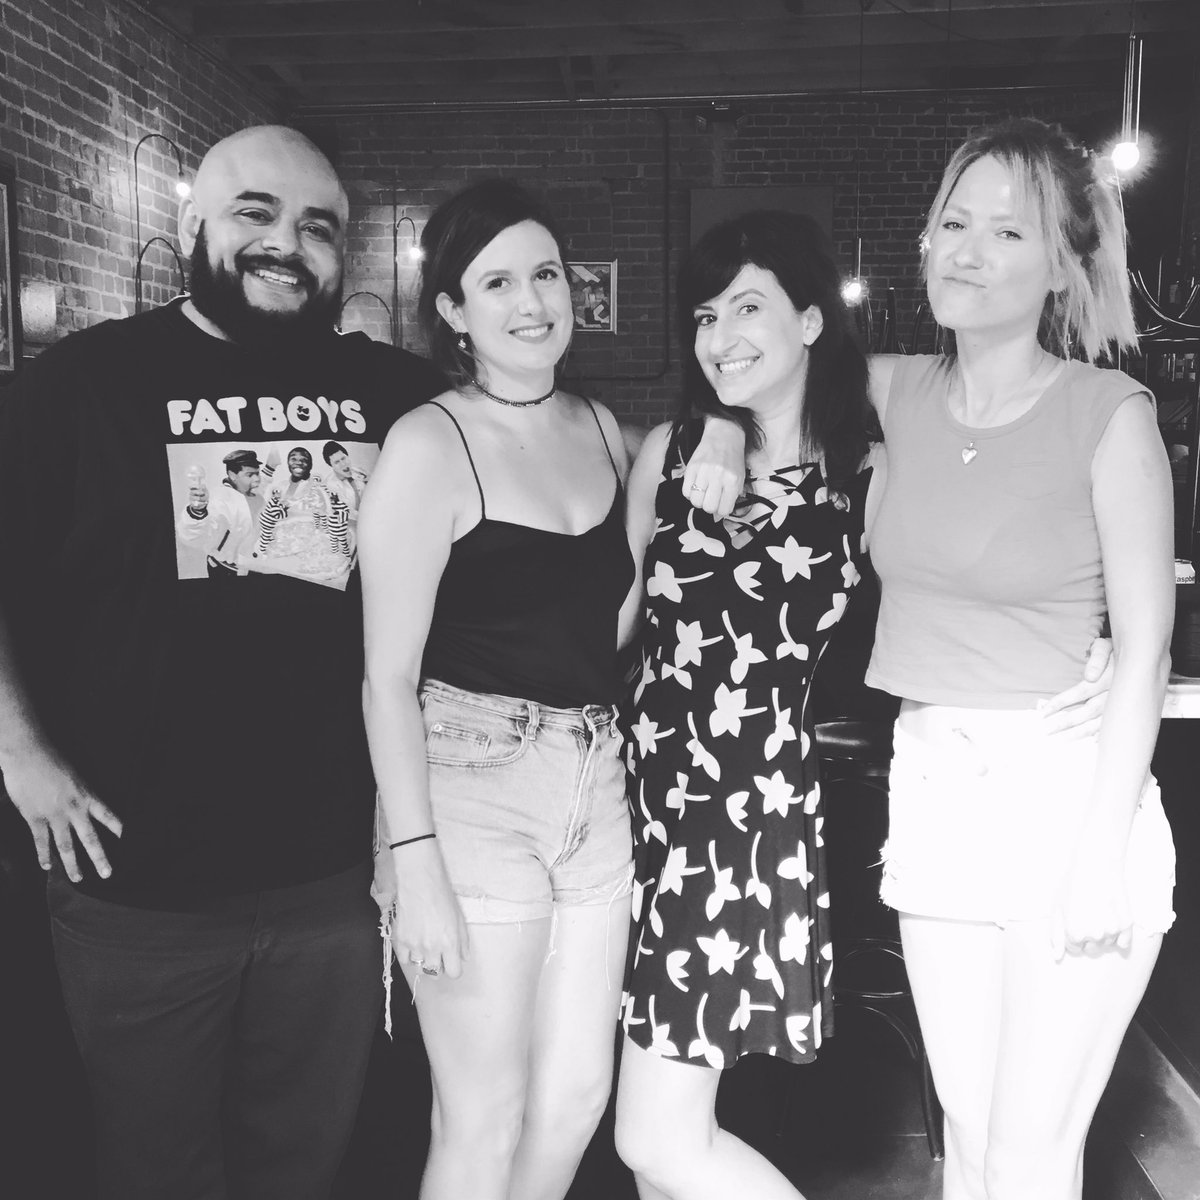 This is the #truestory of 4 #models picked to record a #podcast together. Don&#39;t miss #RealWorld #RealityBytes   http:// bit.ly/2xj5GLK  &nbsp;  <br>http://pic.twitter.com/HE1IIRiVC7 &ndash; at Good Housekeeping